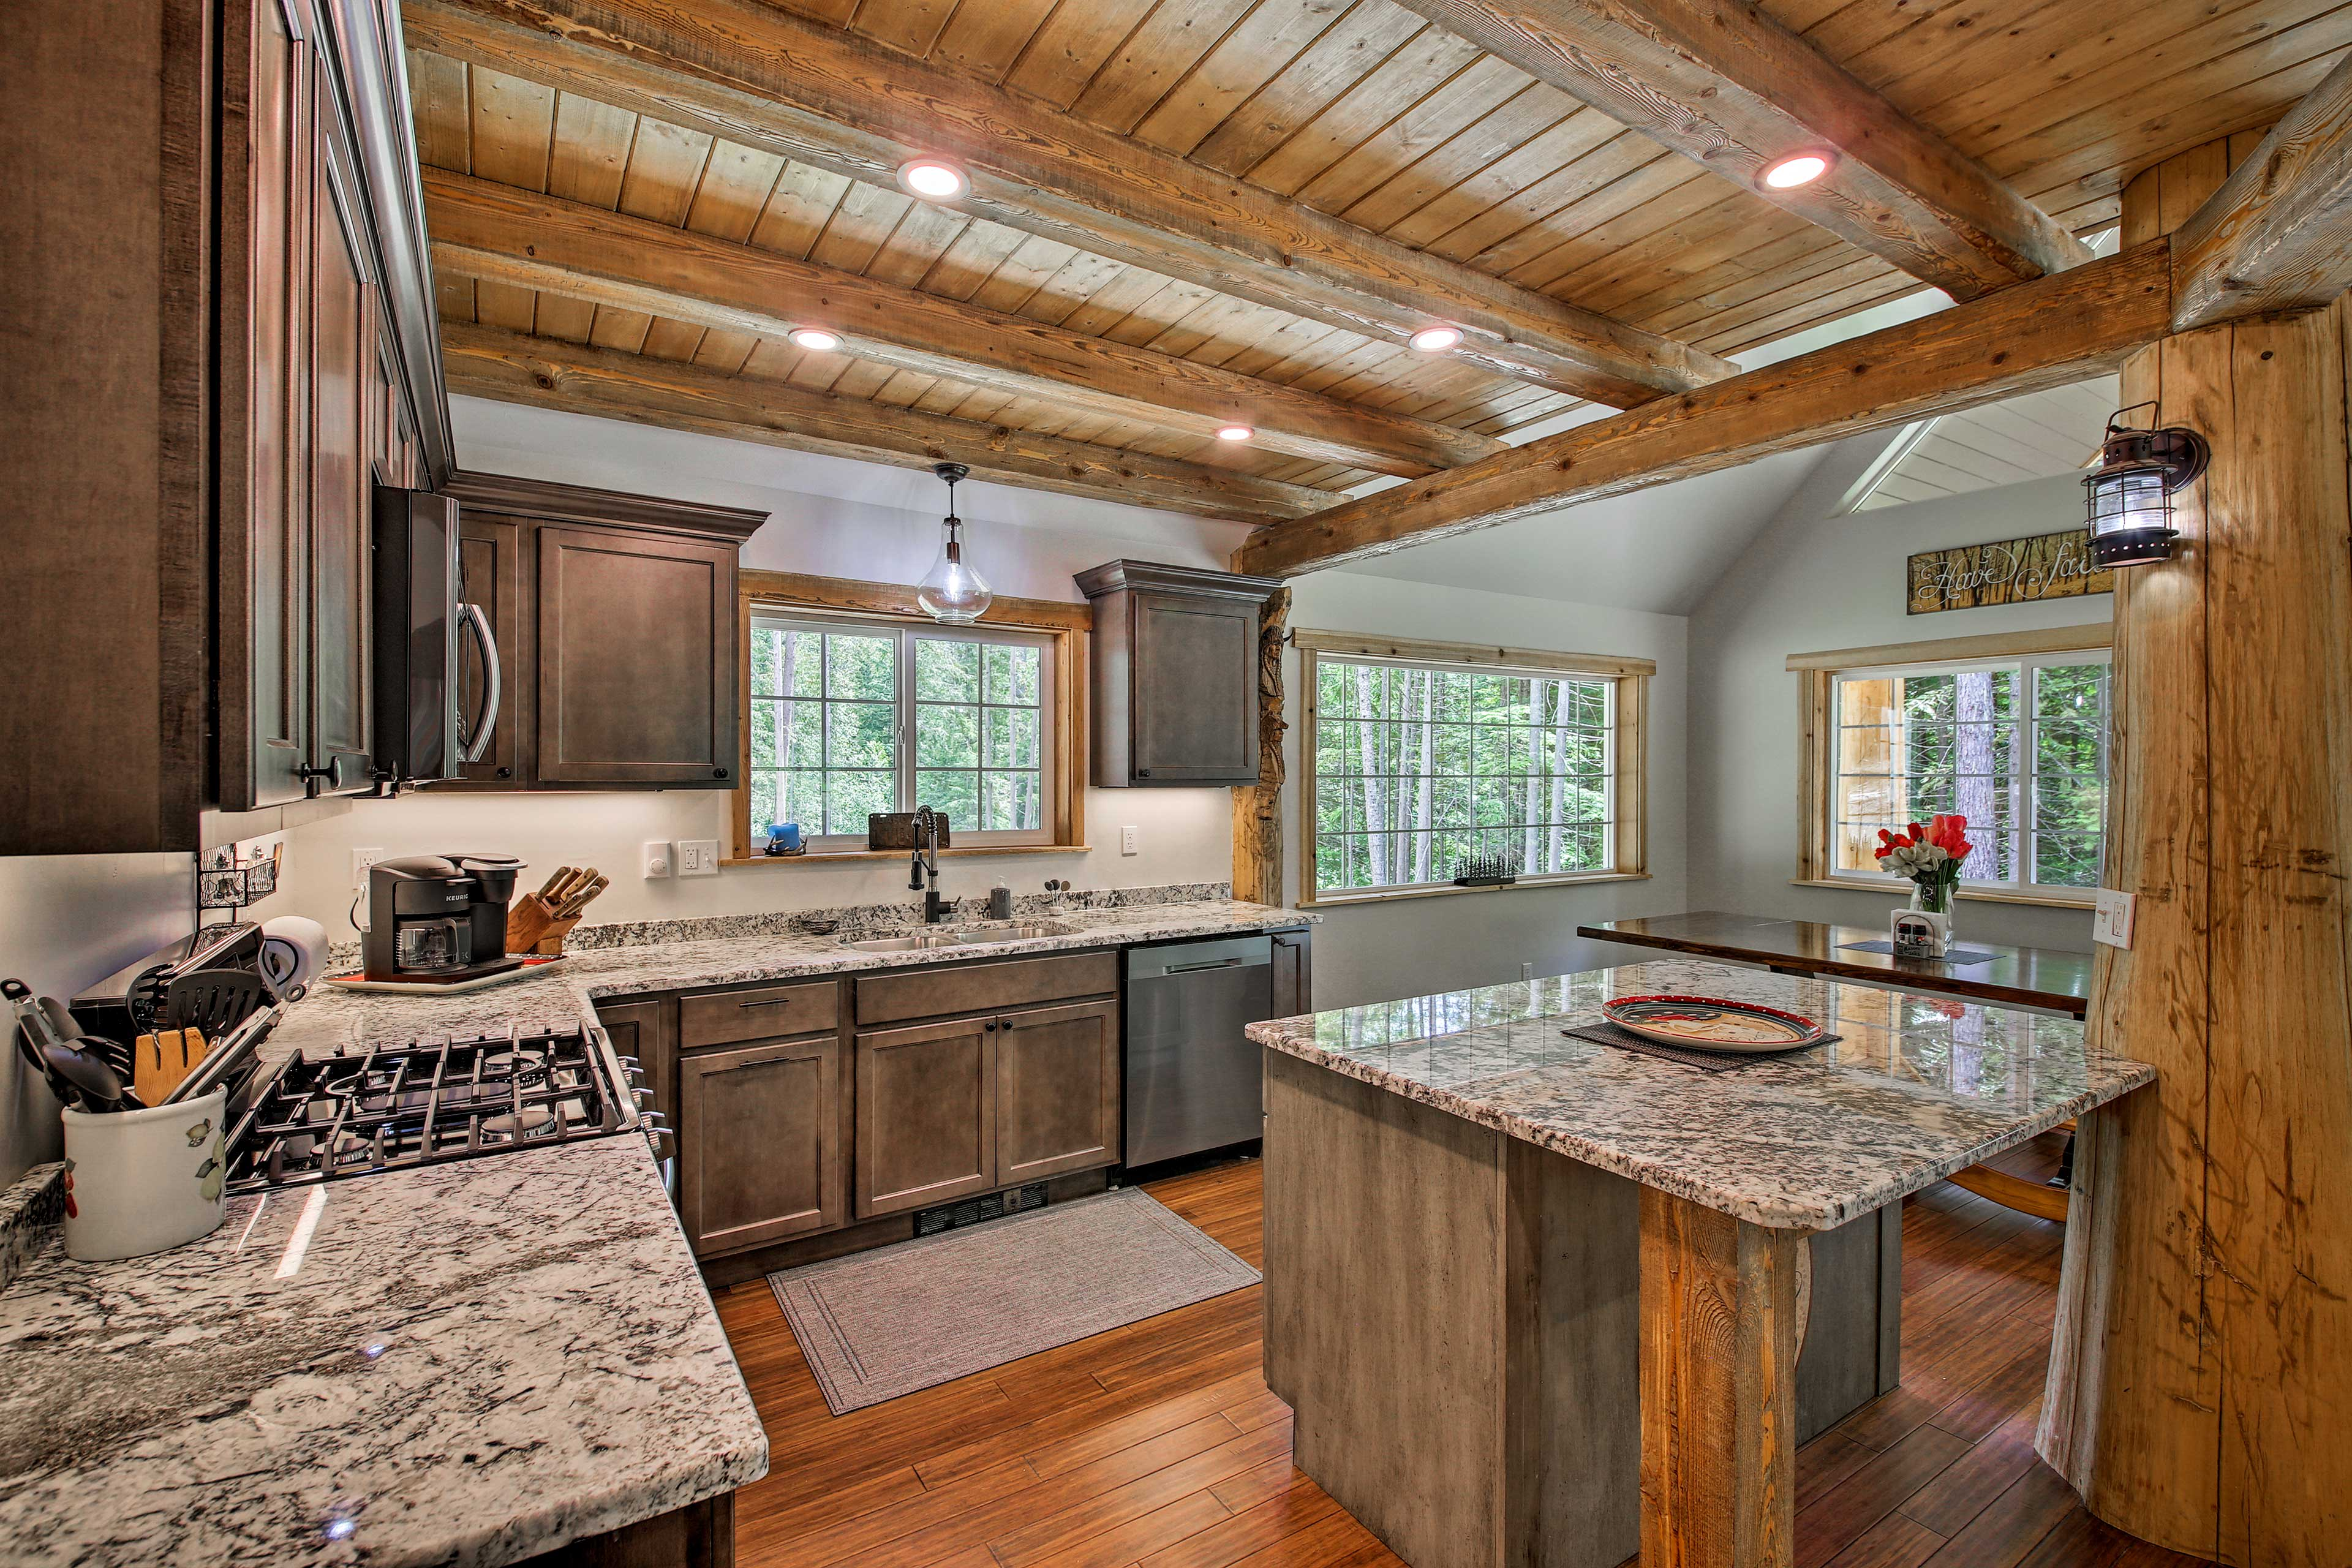 You'll find the kitchen fully equipped!